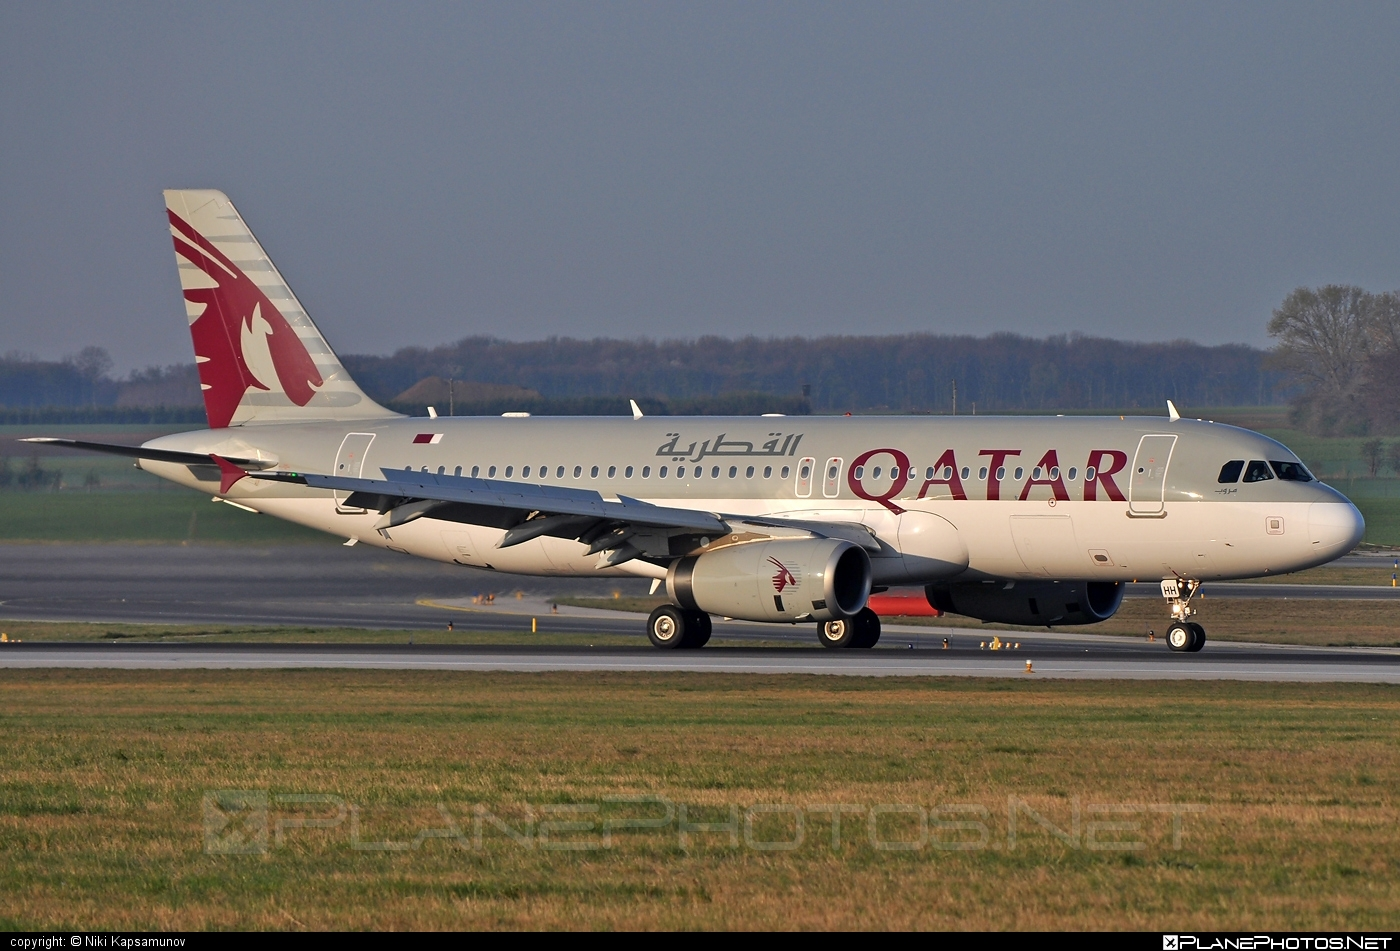 Airbus A320-232 - A7-AHH operated by Qatar Airways #a320 #a320family #airbus #airbus320 #qatarairways